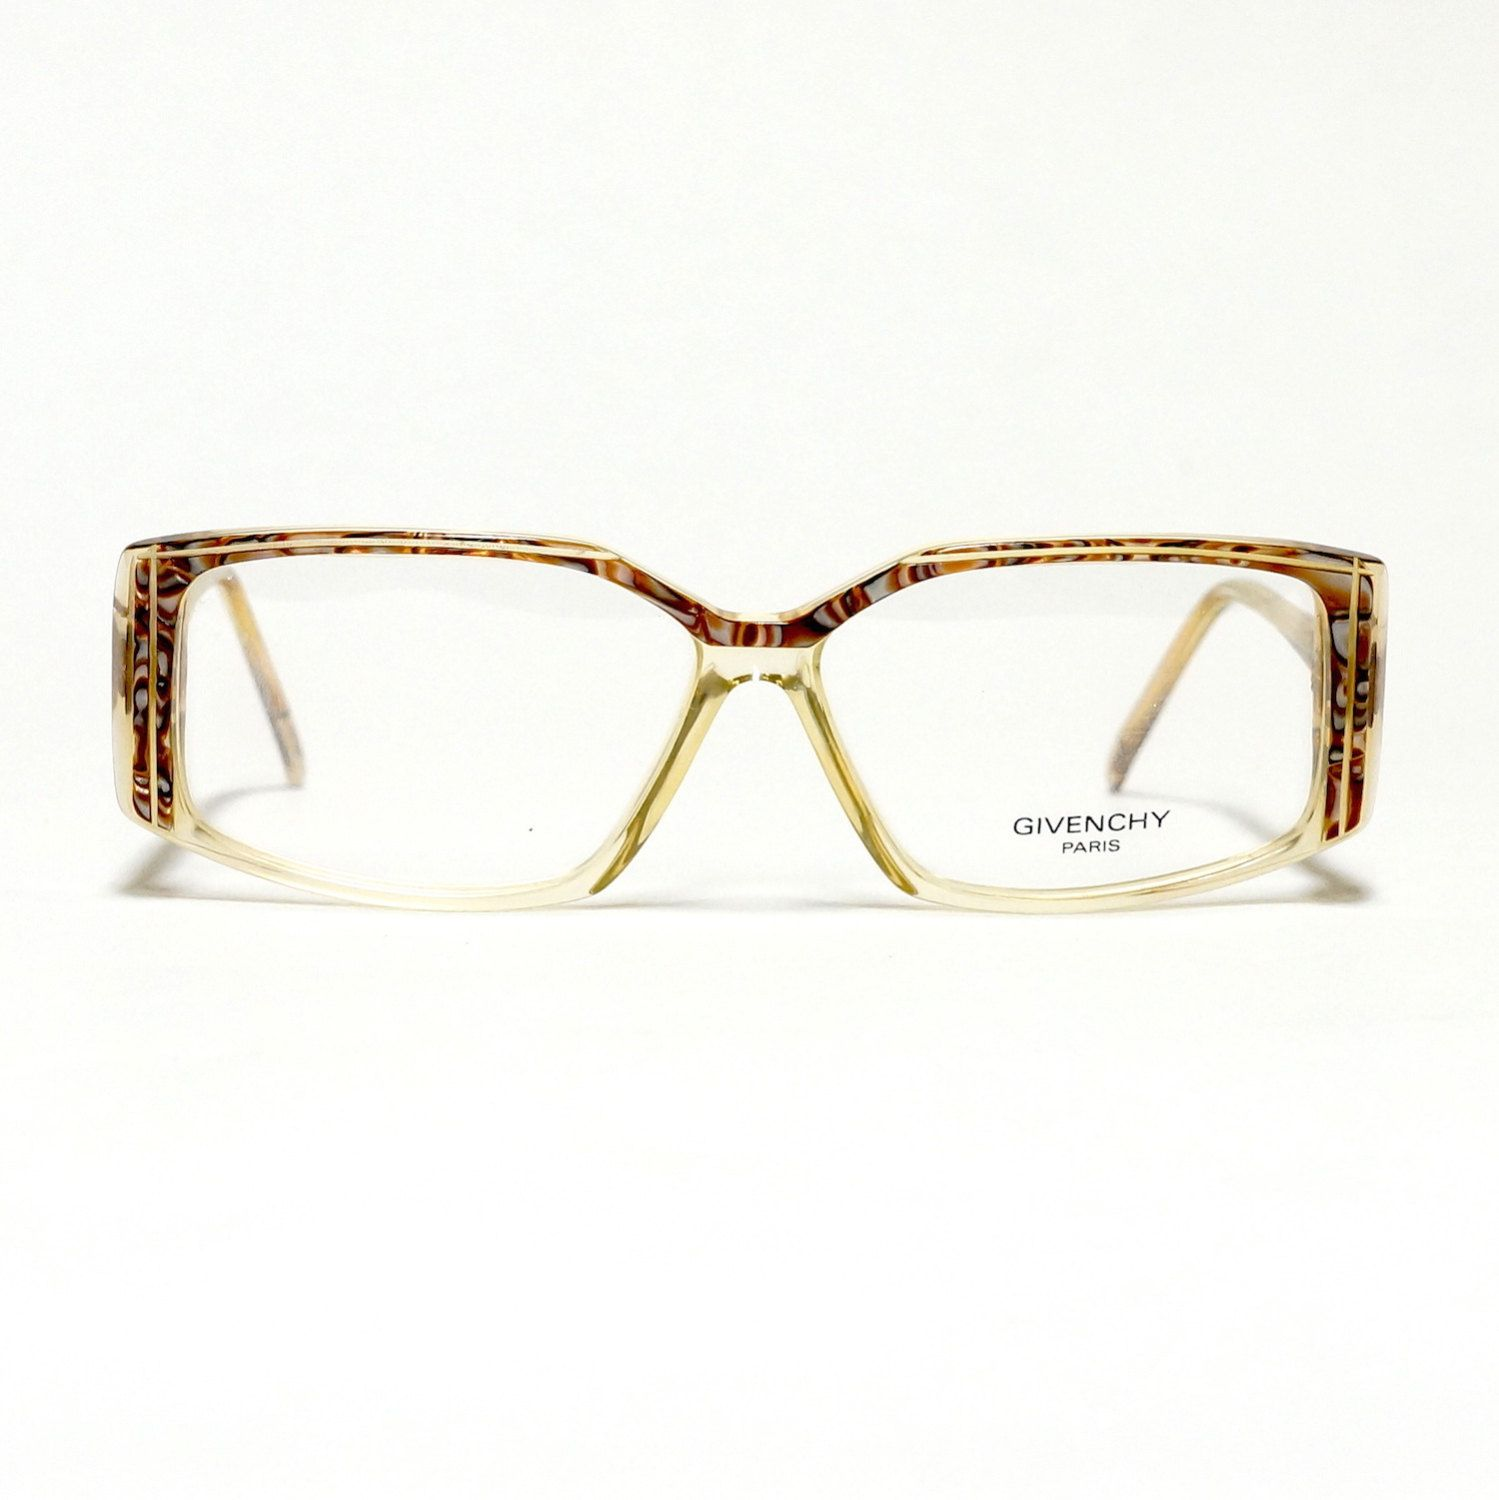 80s Givenchy Vintage glasses Frame | French Designer Glasses ...